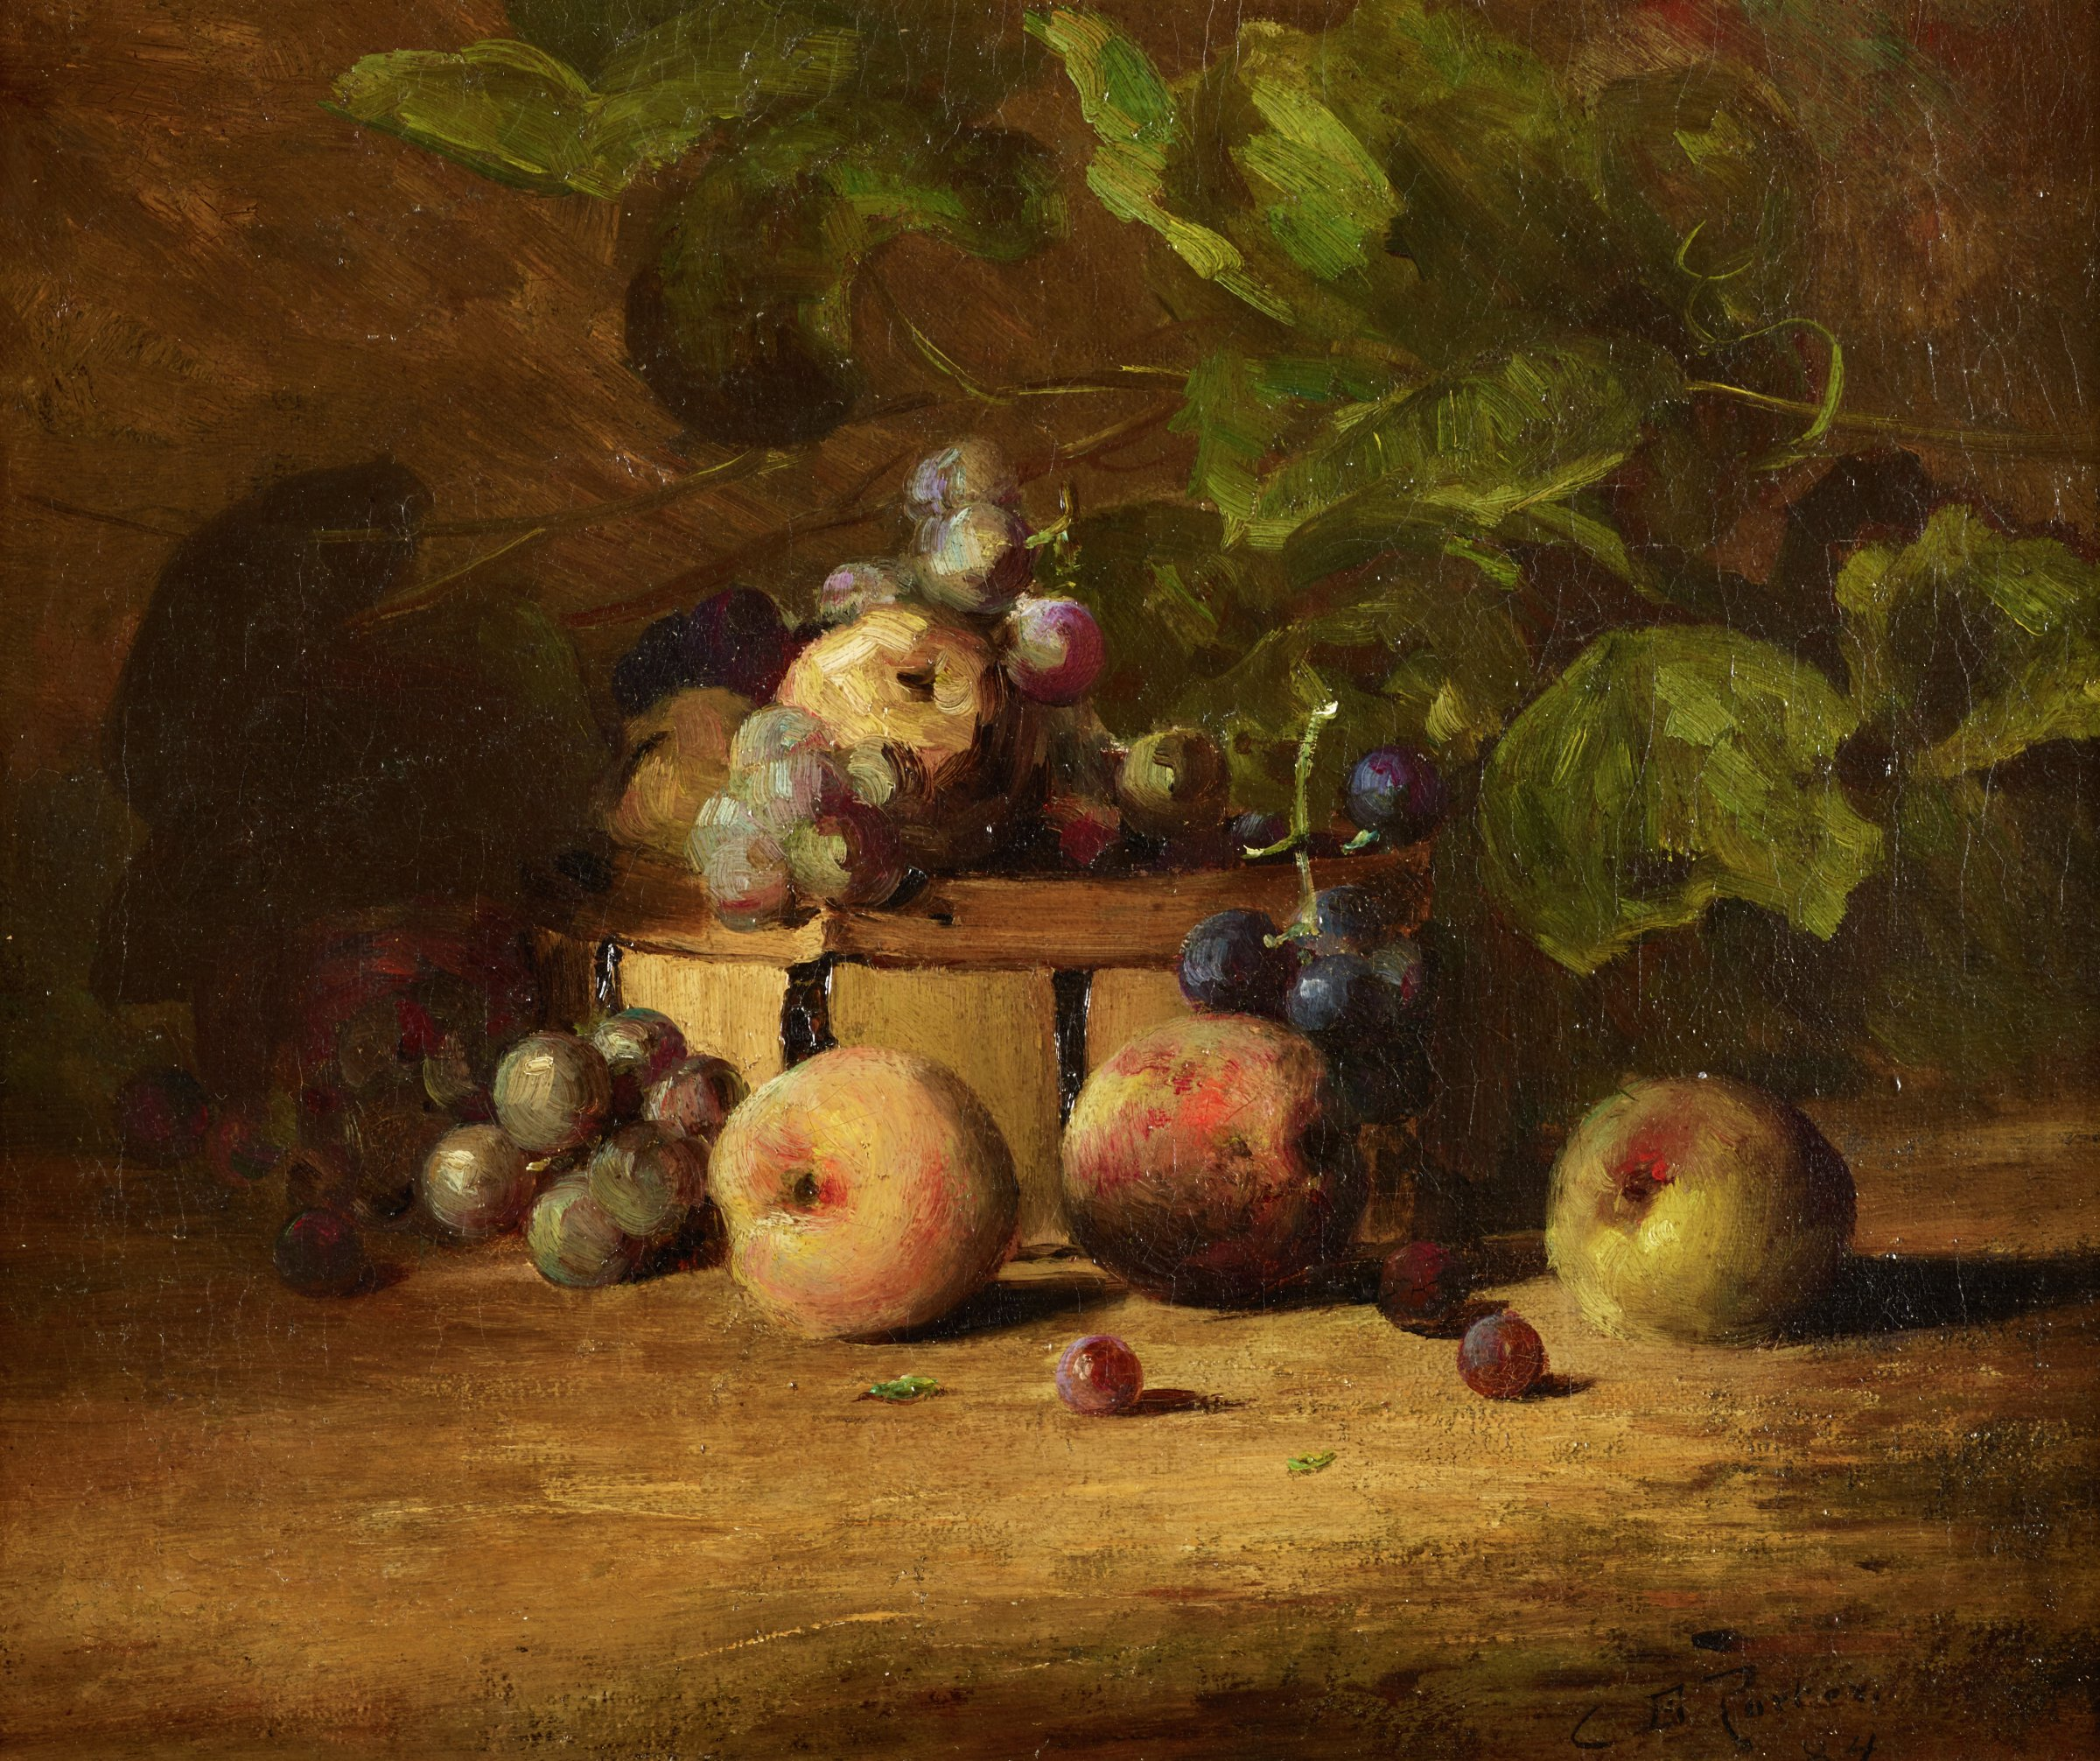 A basket sits in darkness on the ground. Green leaes loom over it, and inside are purple grapes and what appears to be an upside-down pear. In front of the basket are more purple grapes, two peaches, and a green apple.